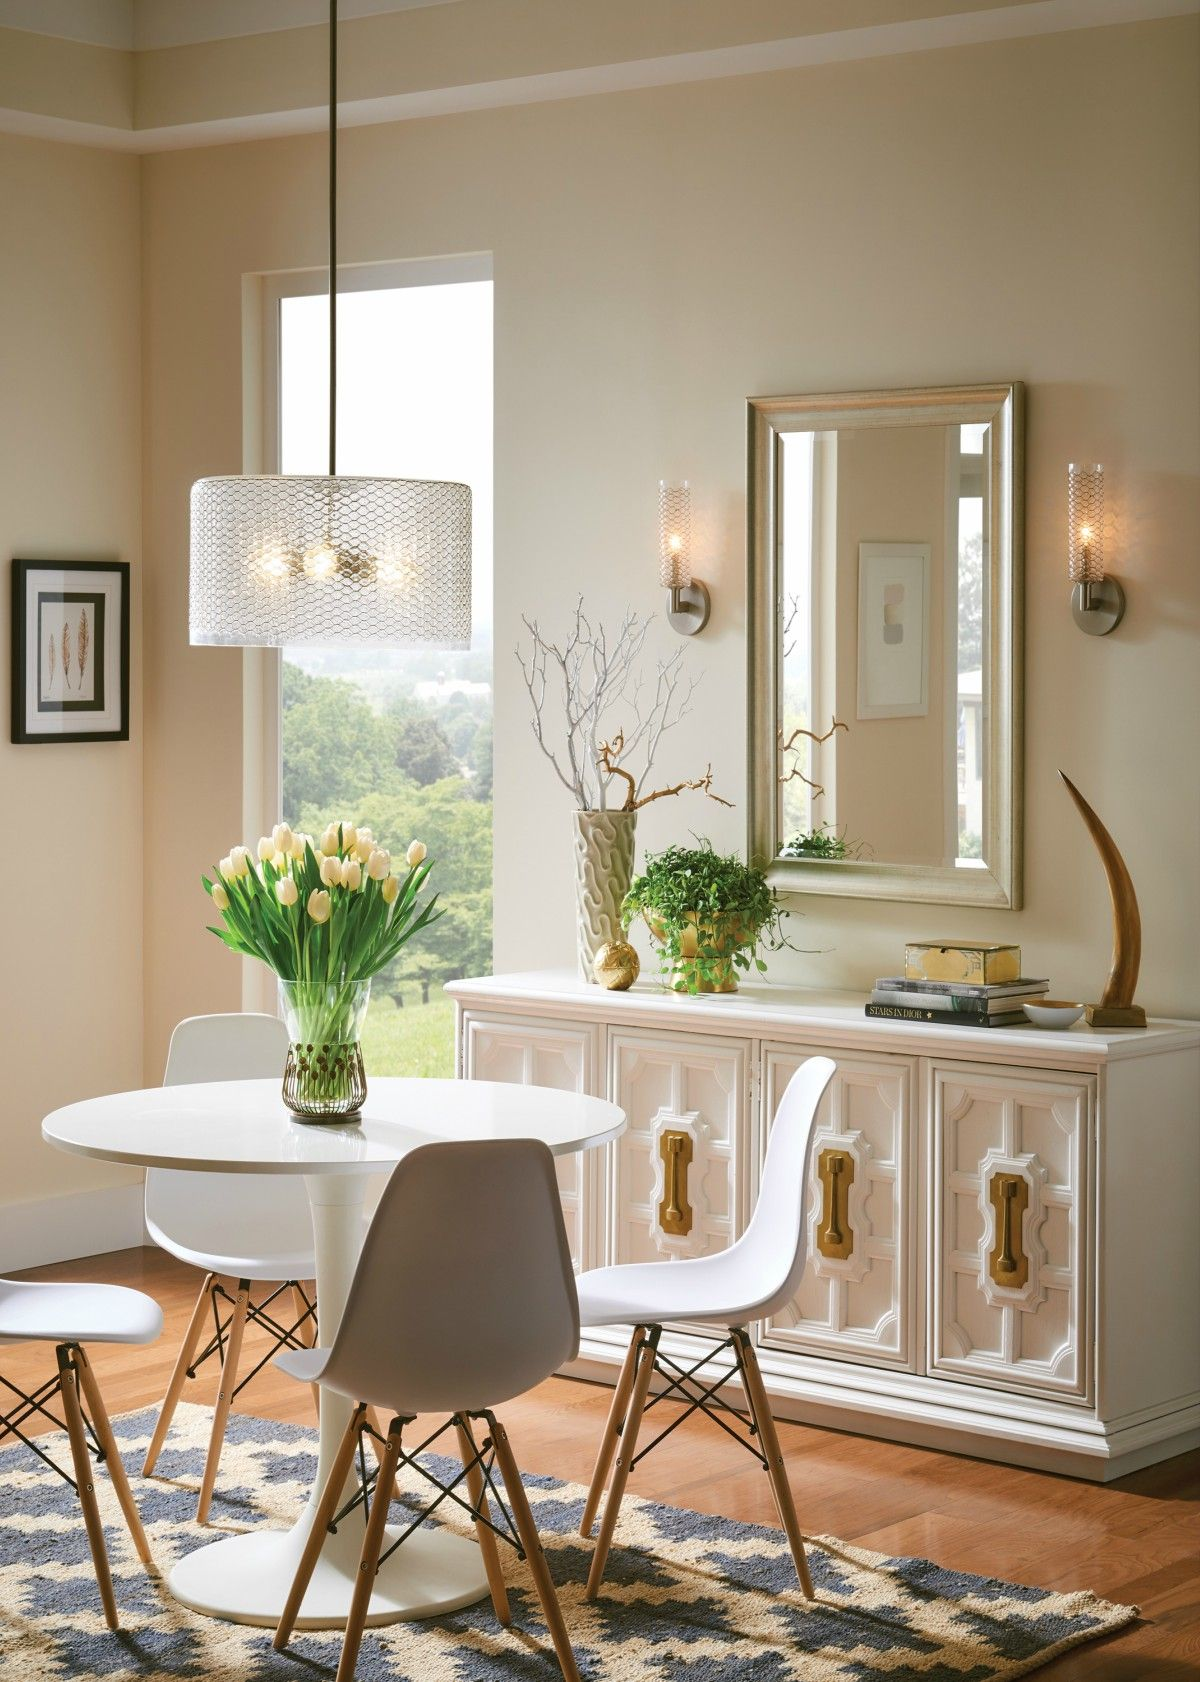 What Are Your Thoughts On This Dining Room Arrangement Featured